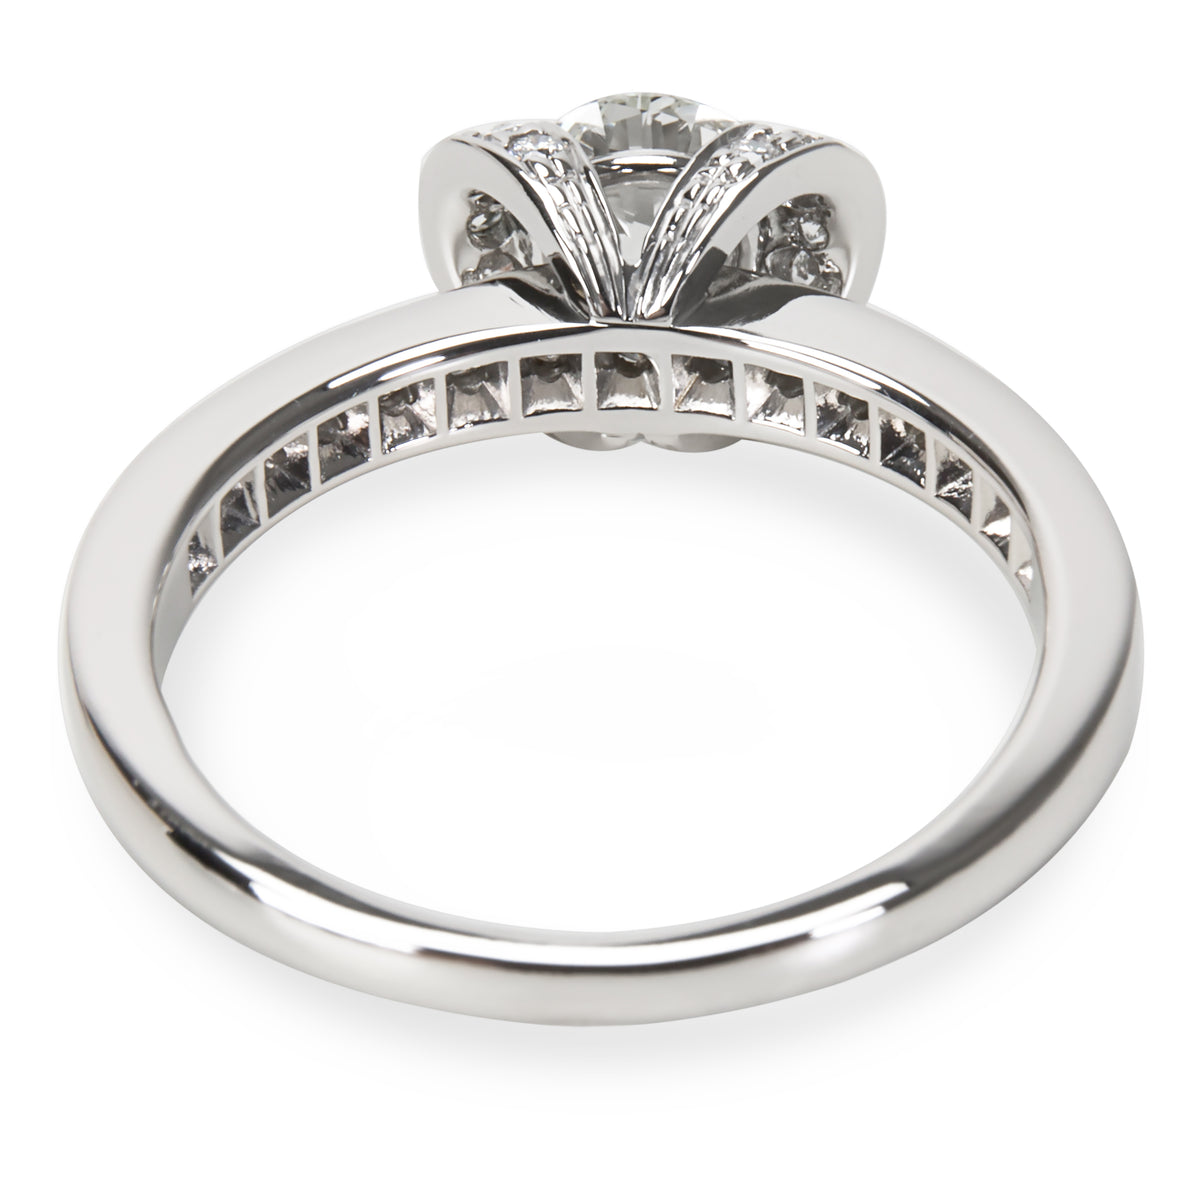 Tiffany & Co. Ribbon Diamond Engagement Ring in Platinum 0.55 ctw H-VS1